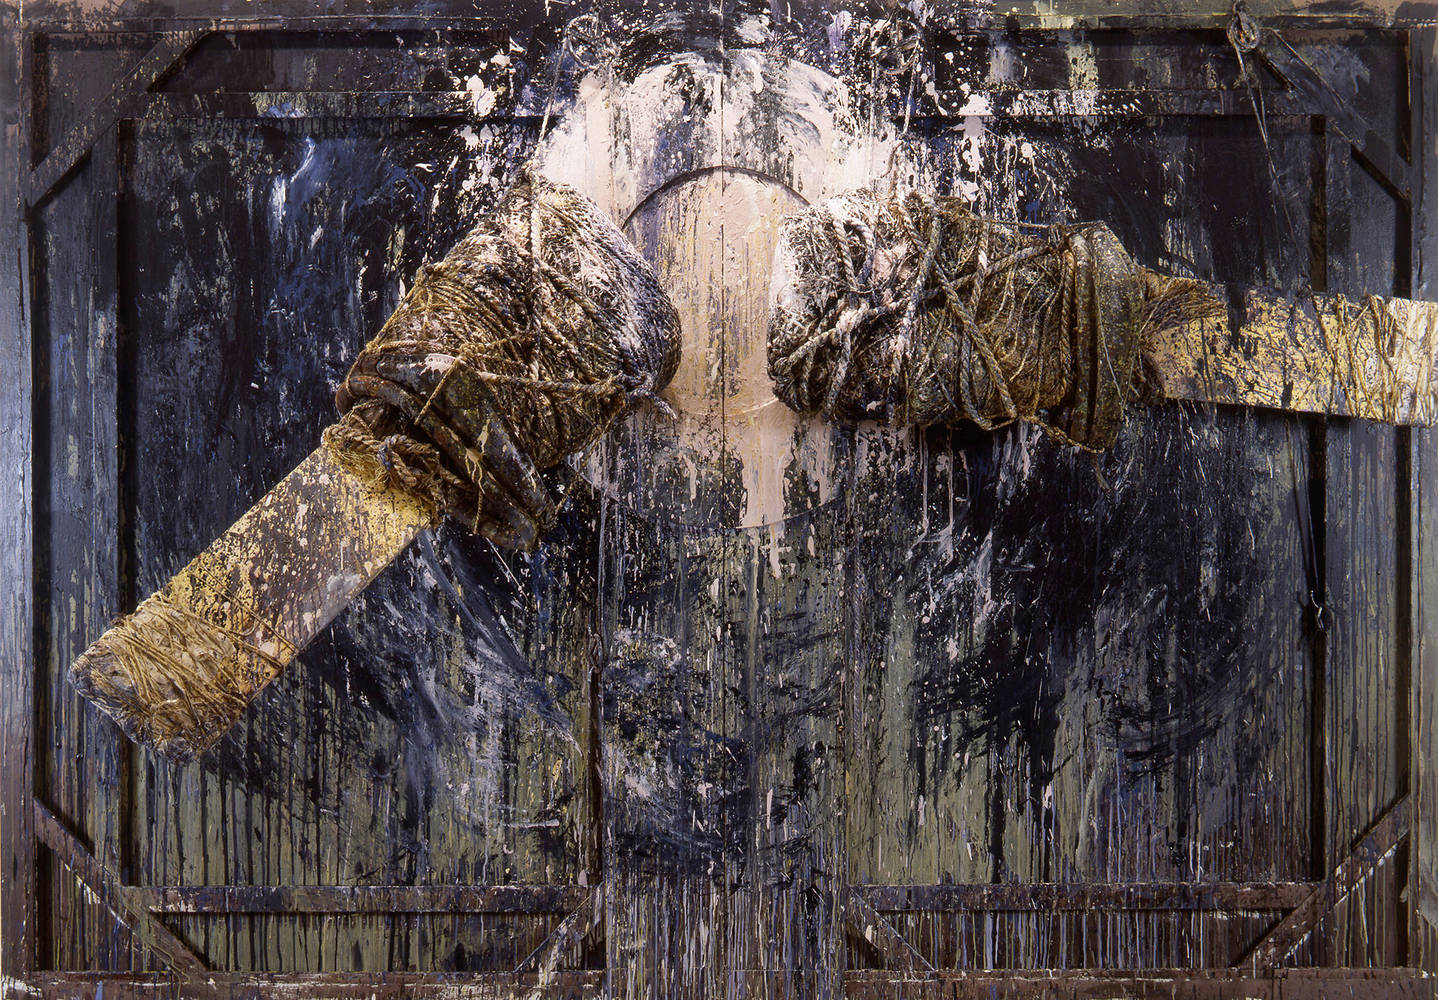 Acrylic painting  Cycle, 1989  by David  Maxim